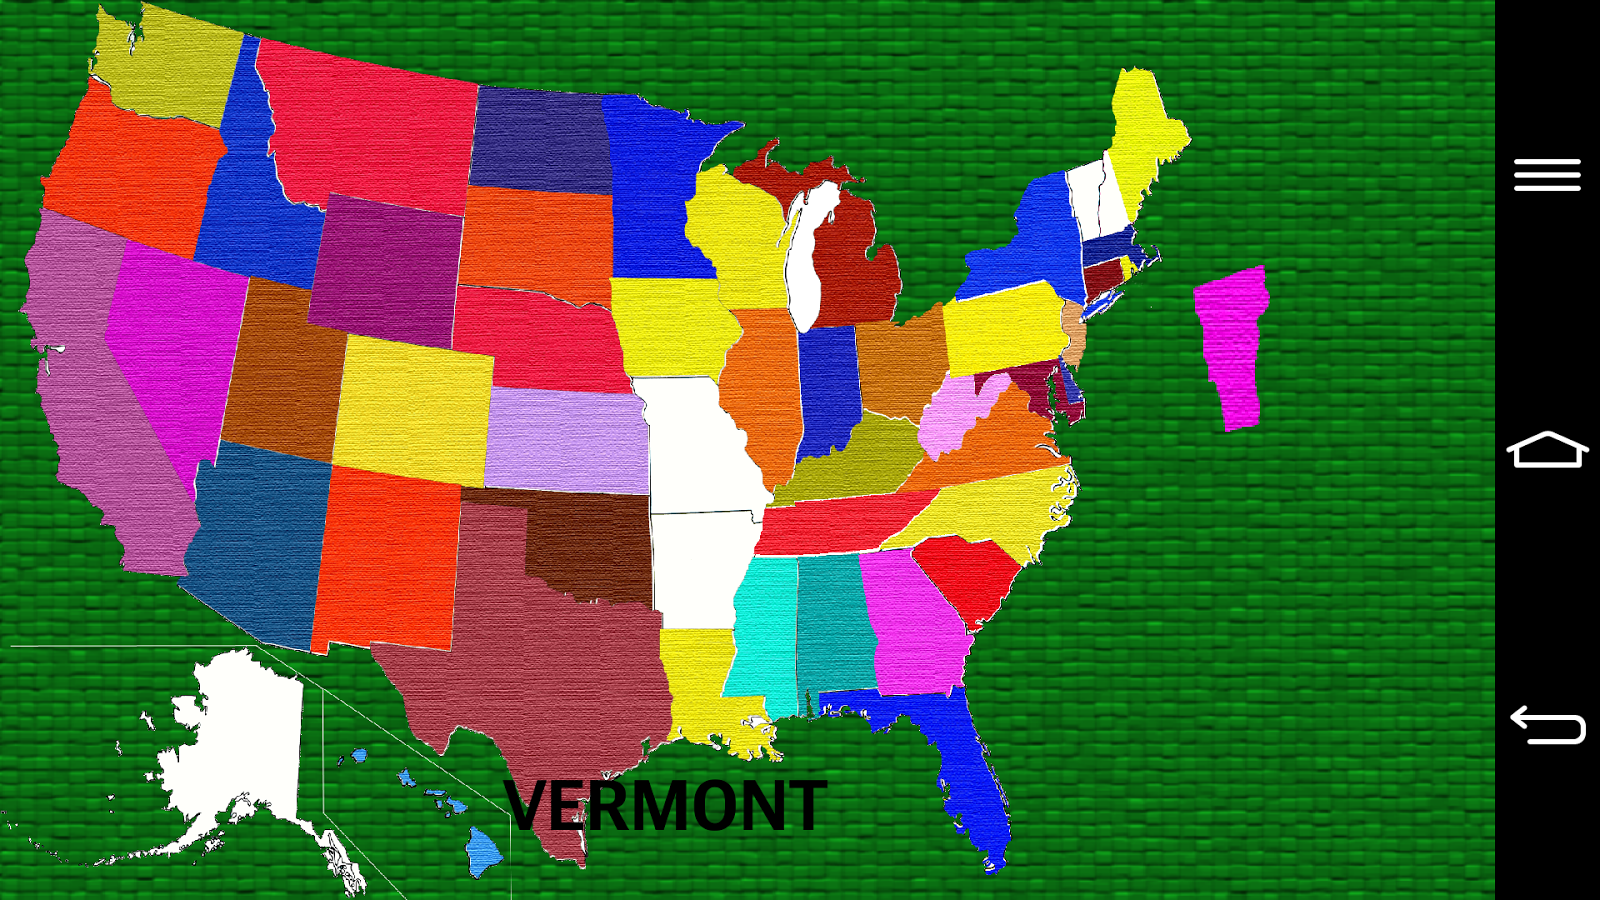 USA Map Puzzleusa Puzzle Android Apps On Google Play - Us states map puzzle game